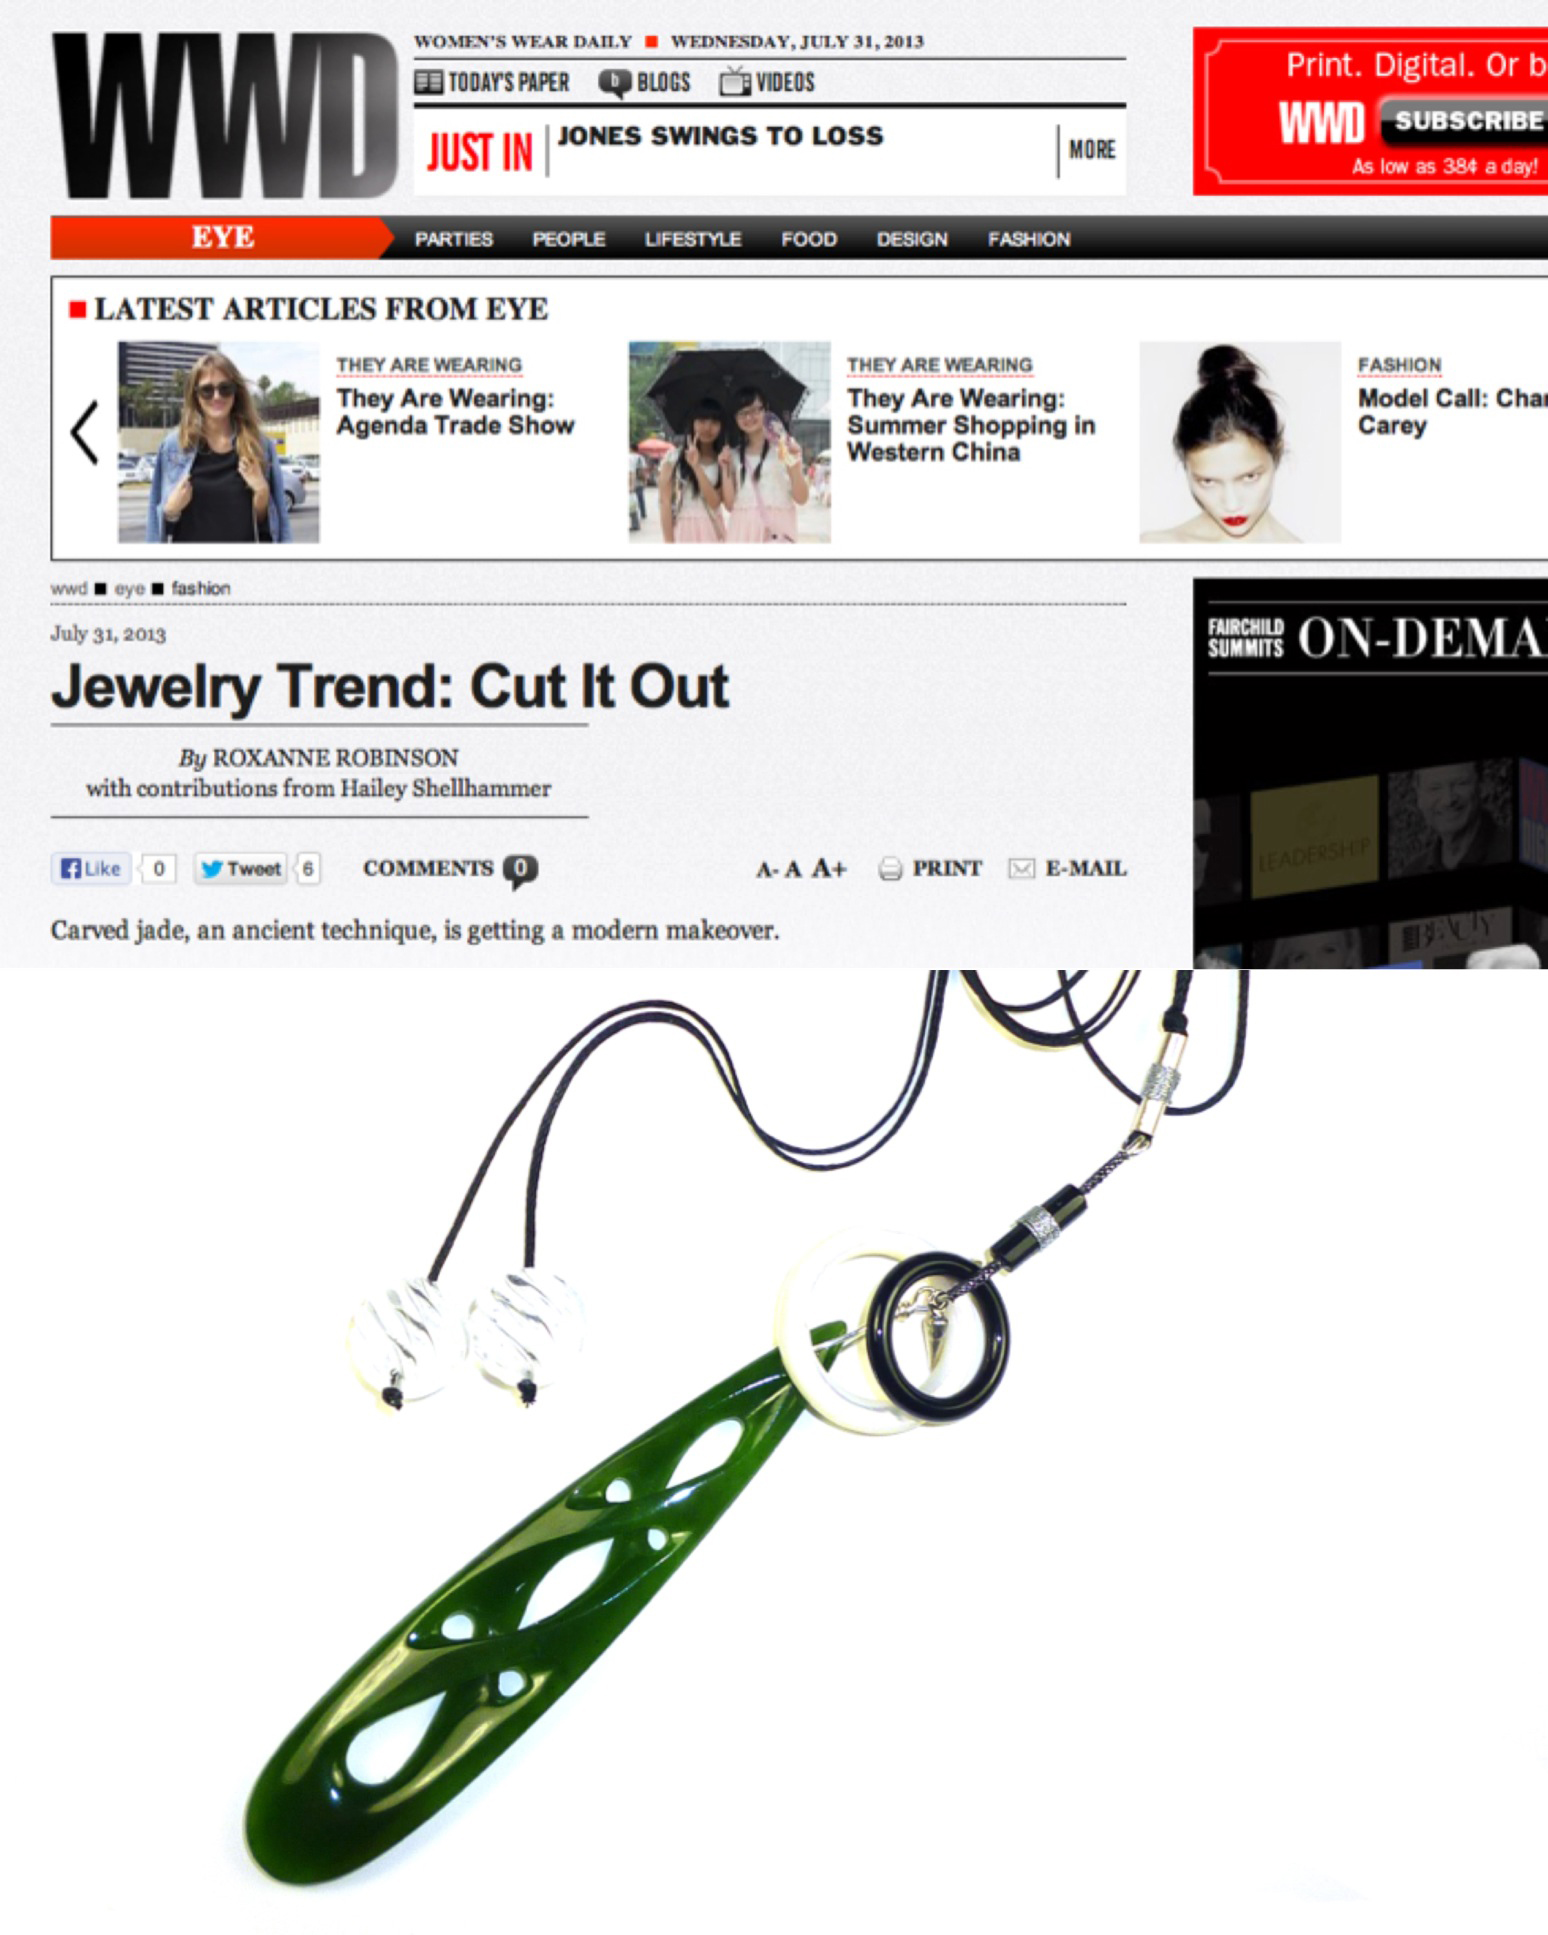 WWD JEWELRY TREND REPORT